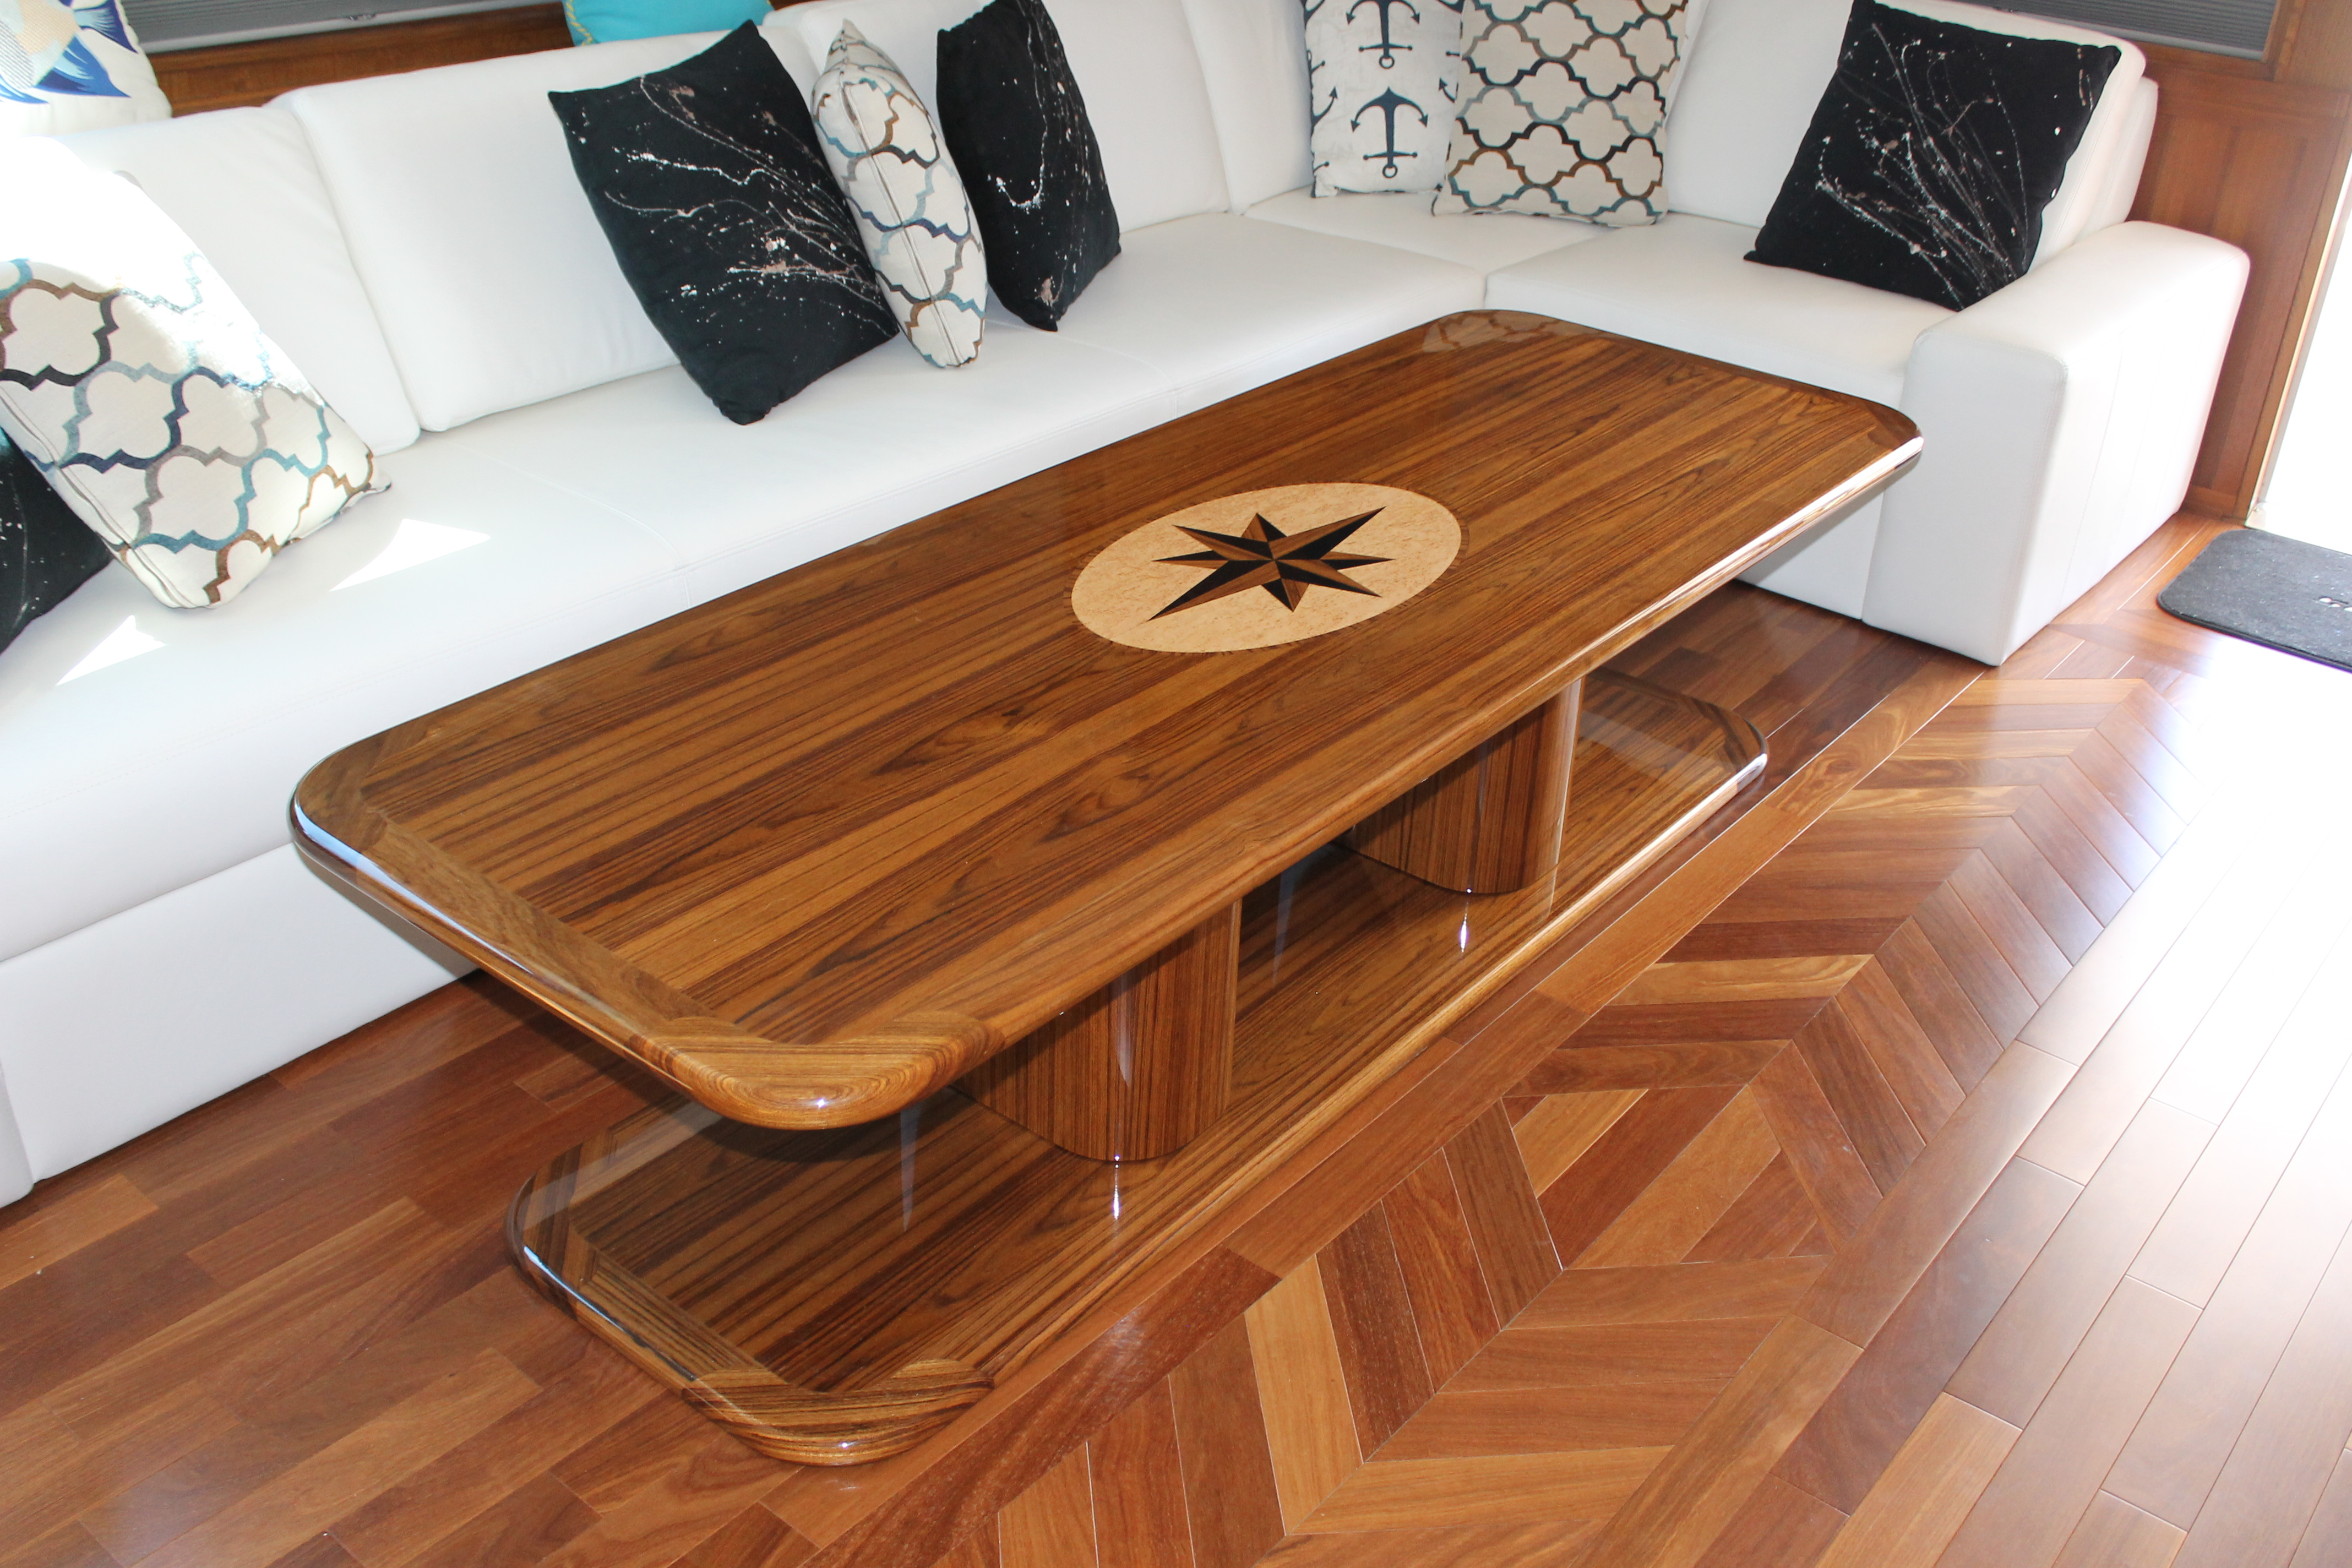 Straight Grain Salon Table with Compass Rose Inlay